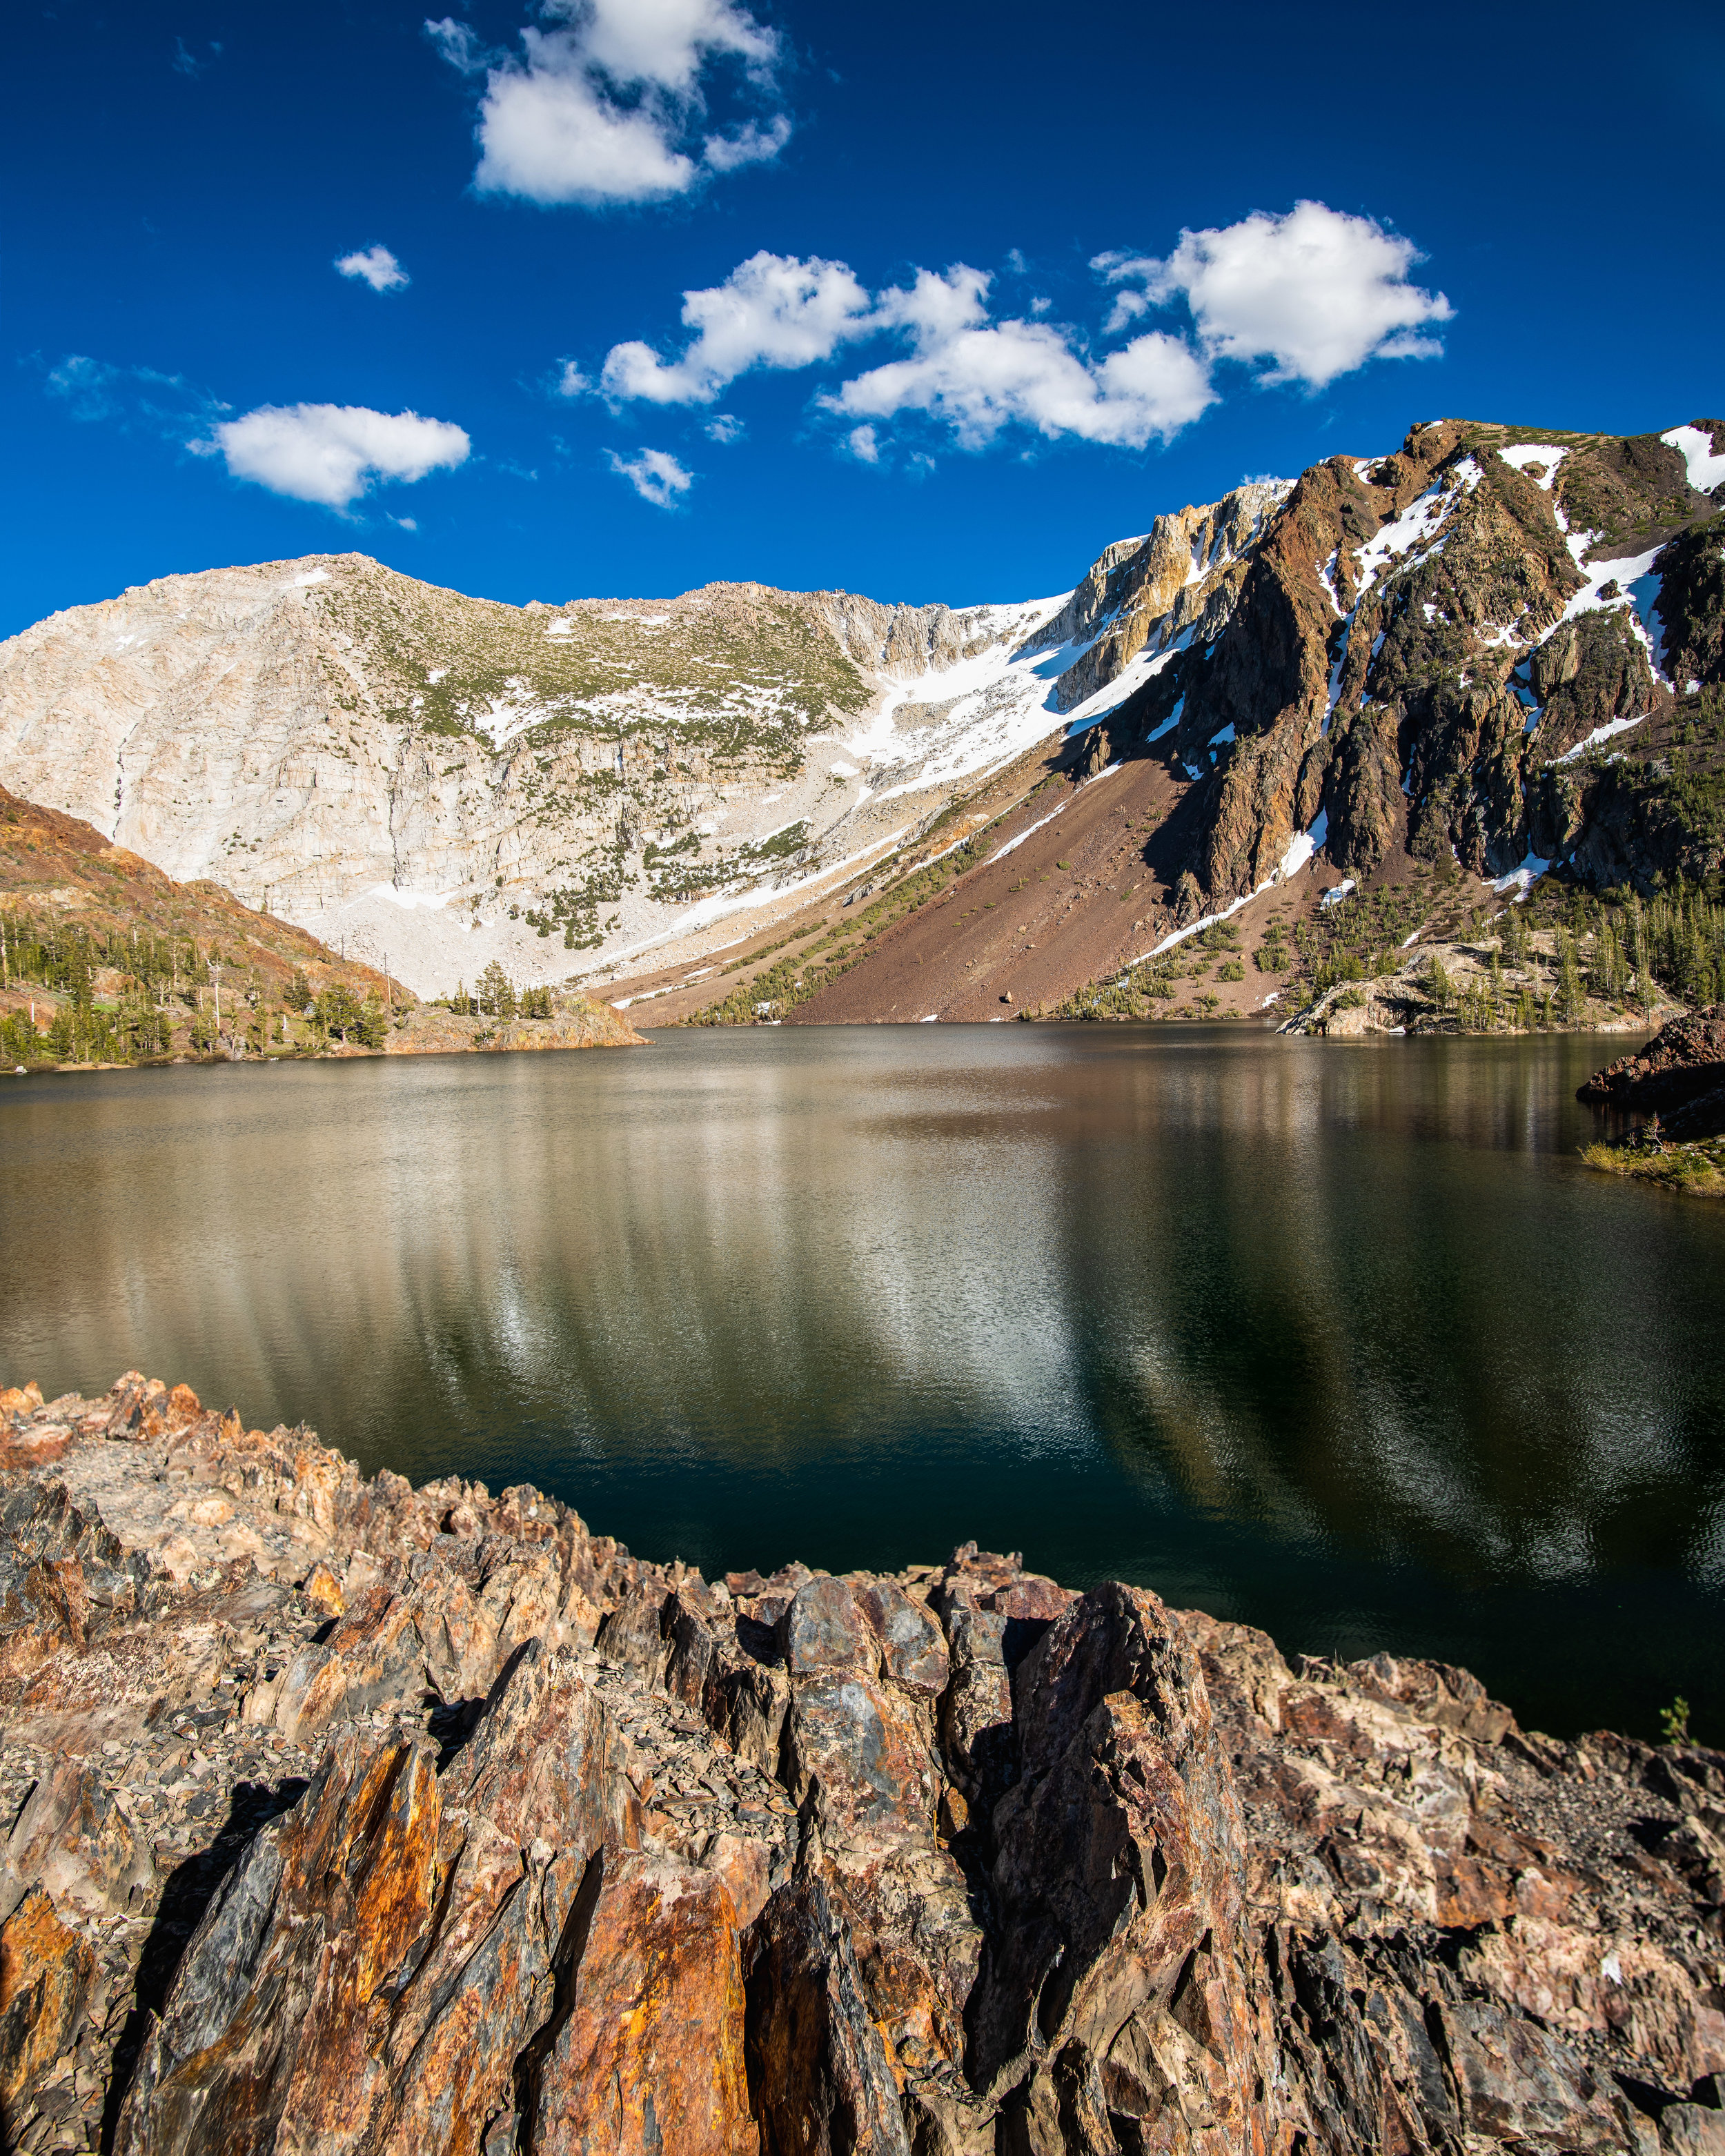 """Ellery Lake at Tioga Pass ((1/50 sec at f/8.0, iso64, 20mm len with polarizer) GPS coordinate: 37°56'21.8""""N 119°14'29.8""""W"""